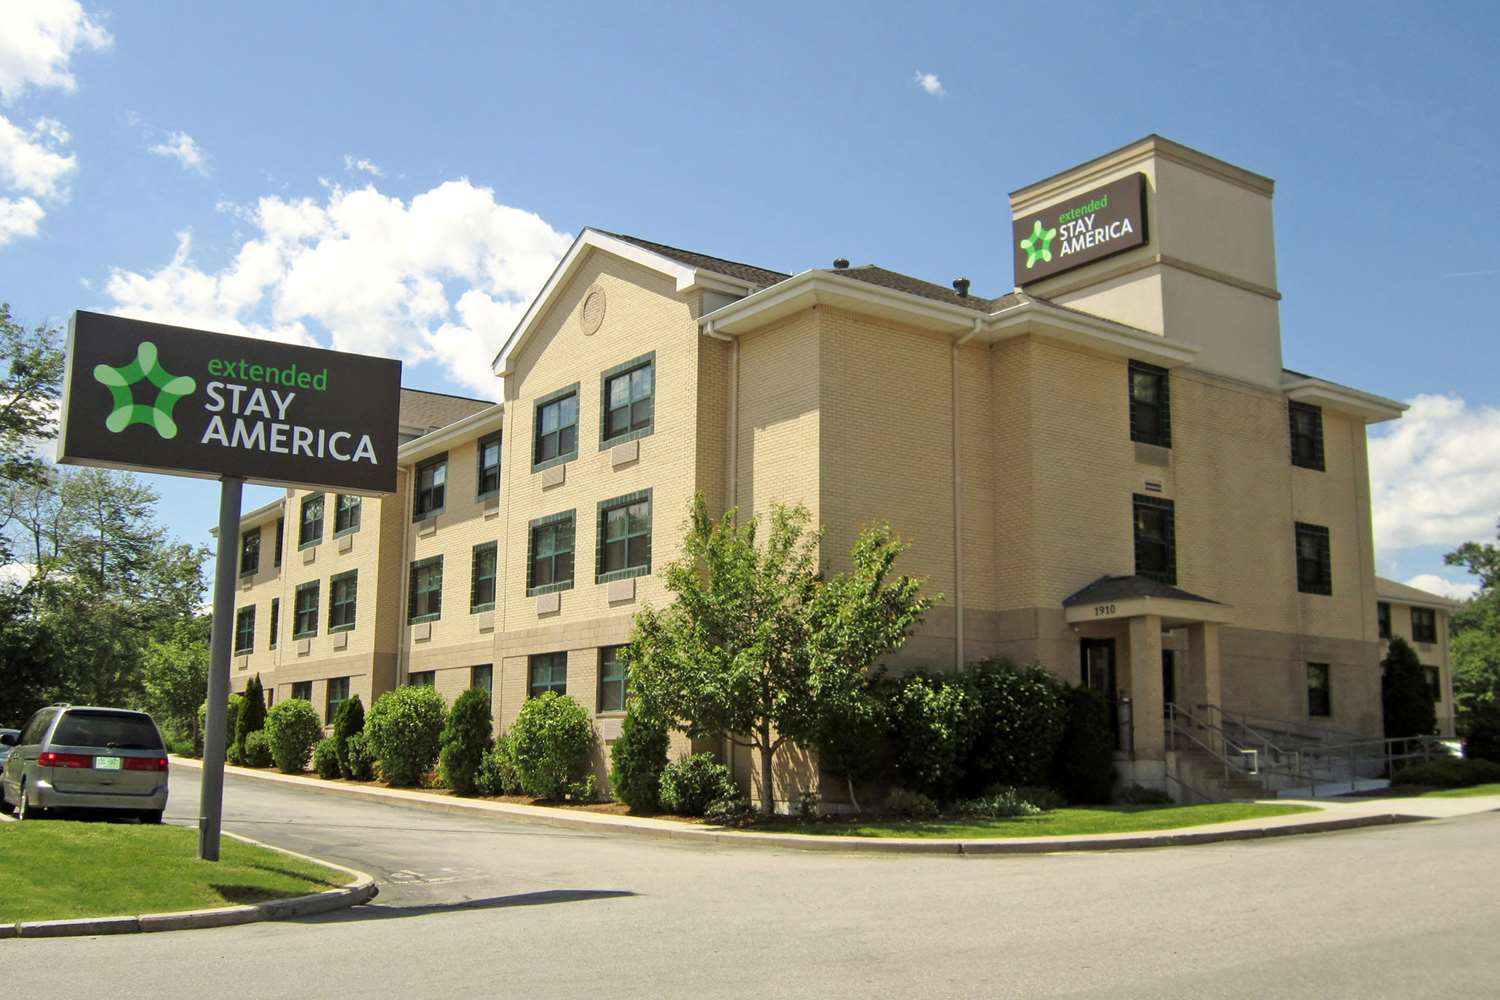 extended stay america hotel tewksbury ma see discounts. Black Bedroom Furniture Sets. Home Design Ideas